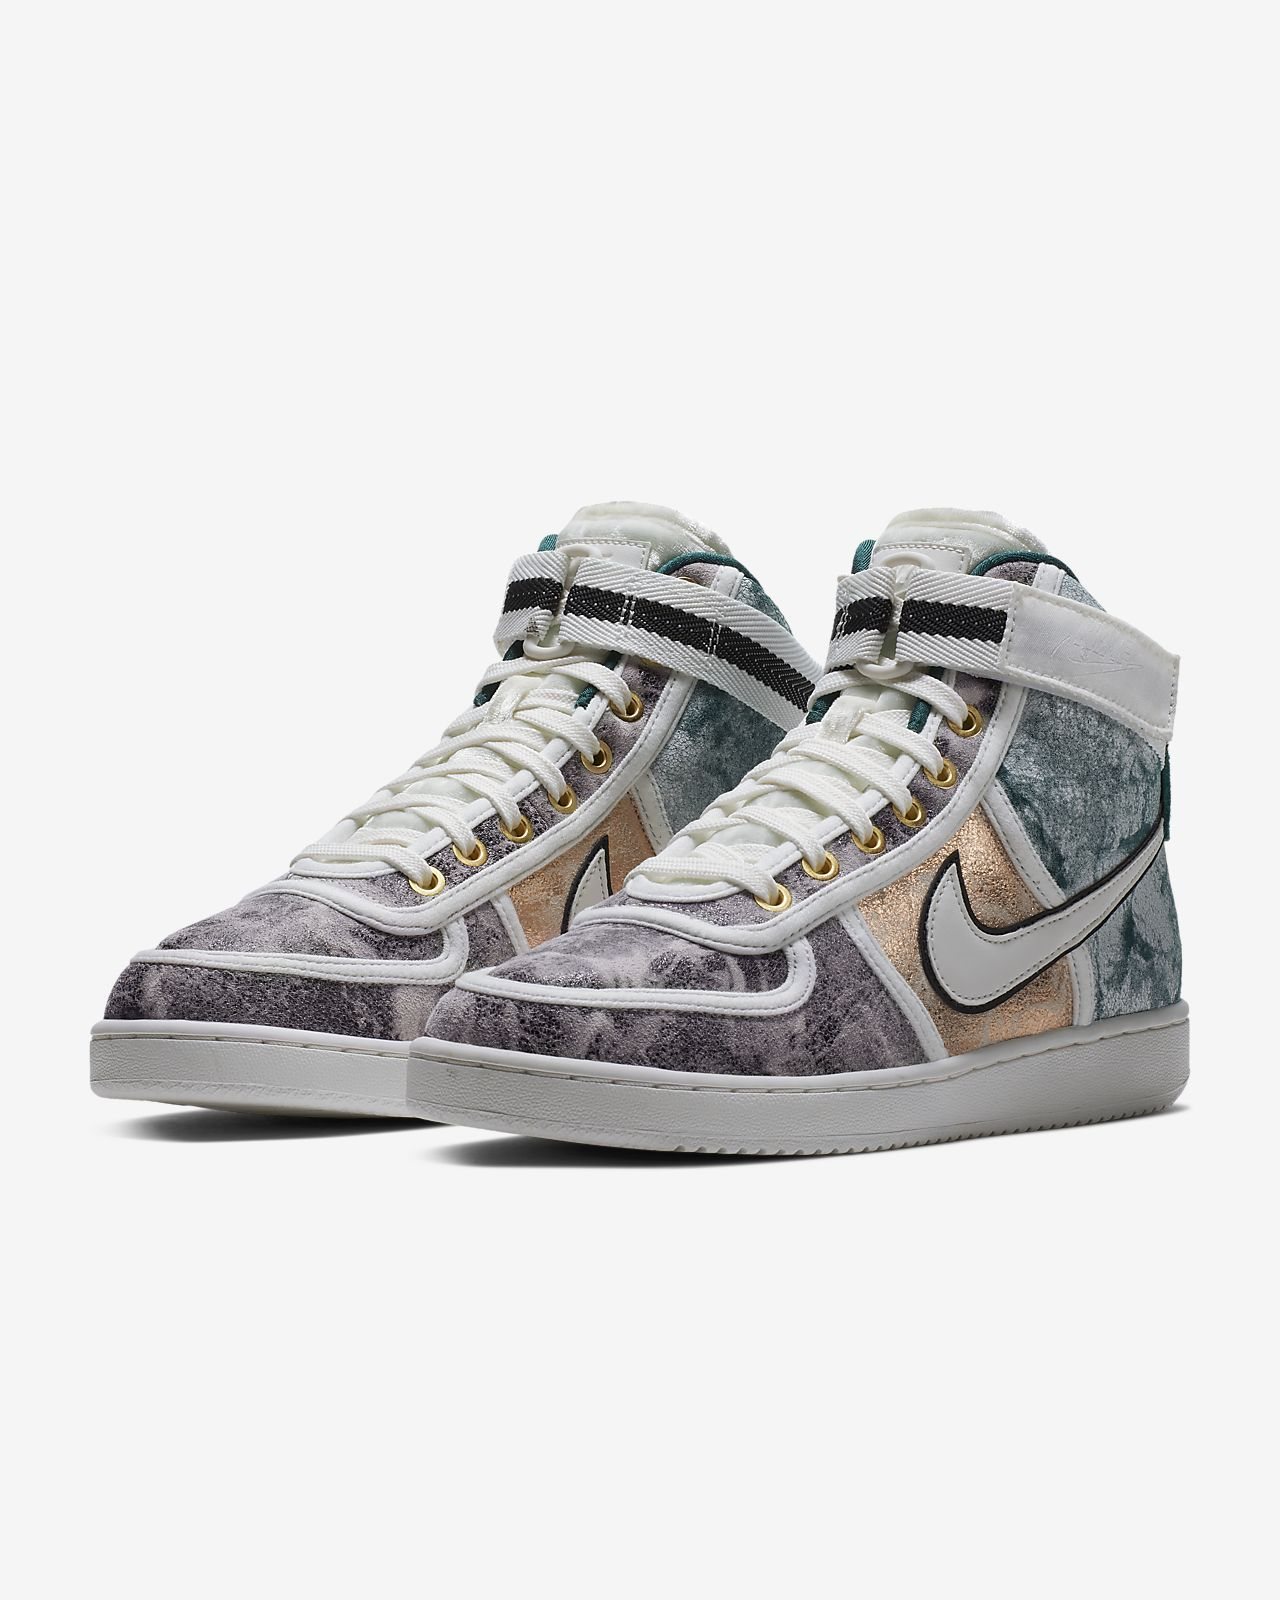 new style 2a7c8 bd0ca Nike Vandal High LX Womens Shoe